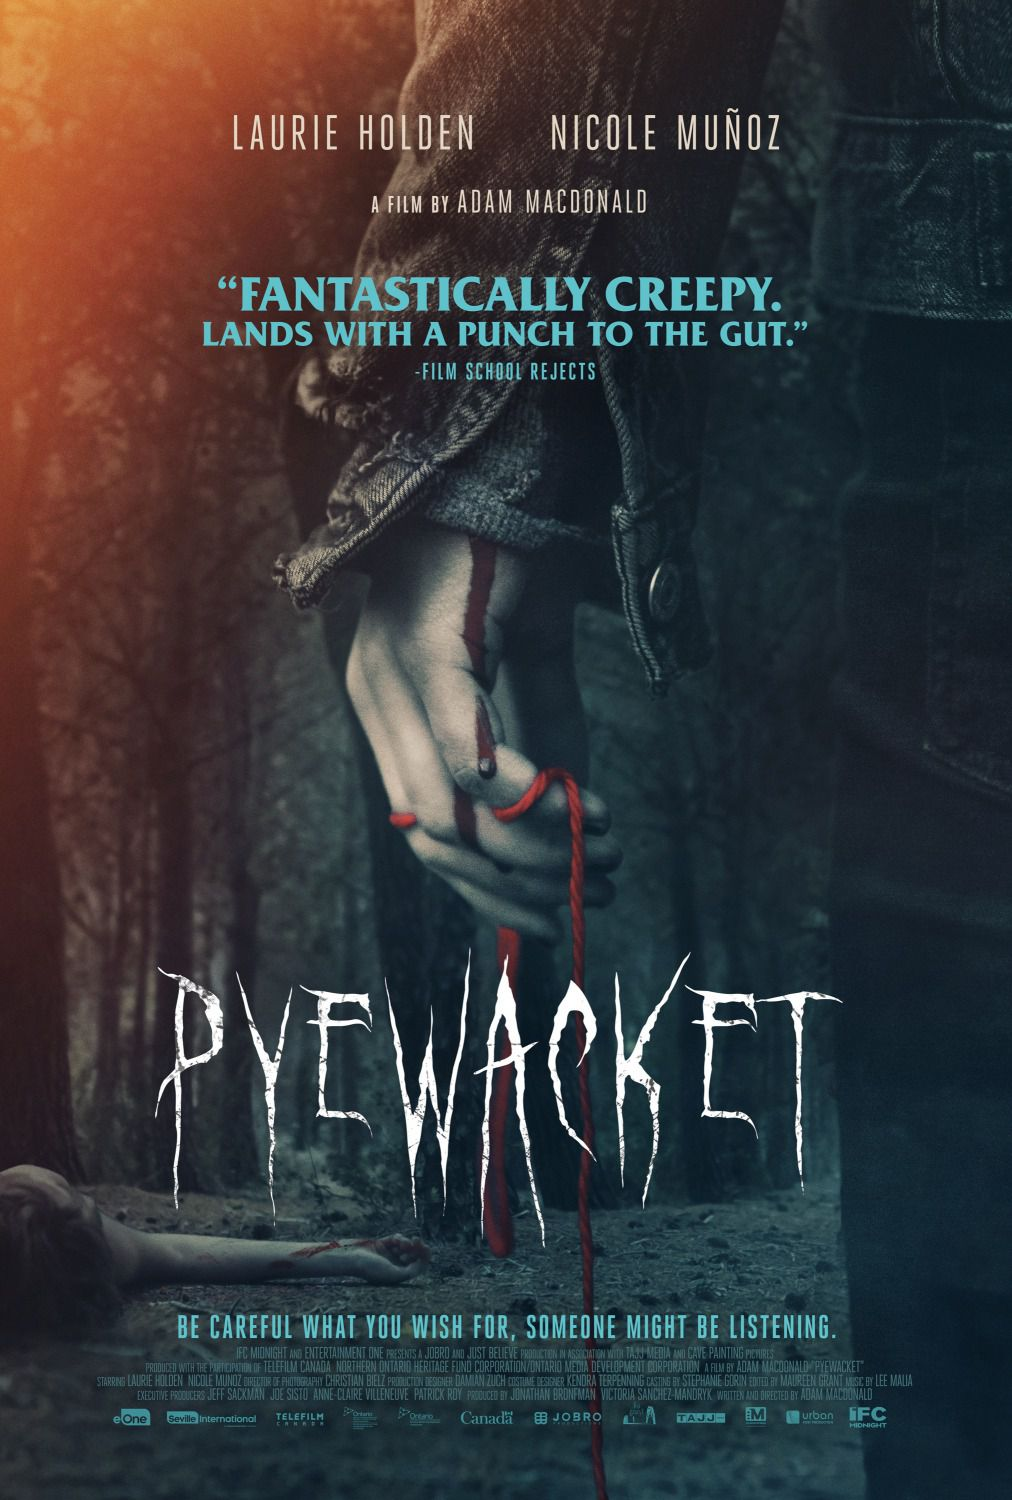 Pyewacket - thriller horror film poster